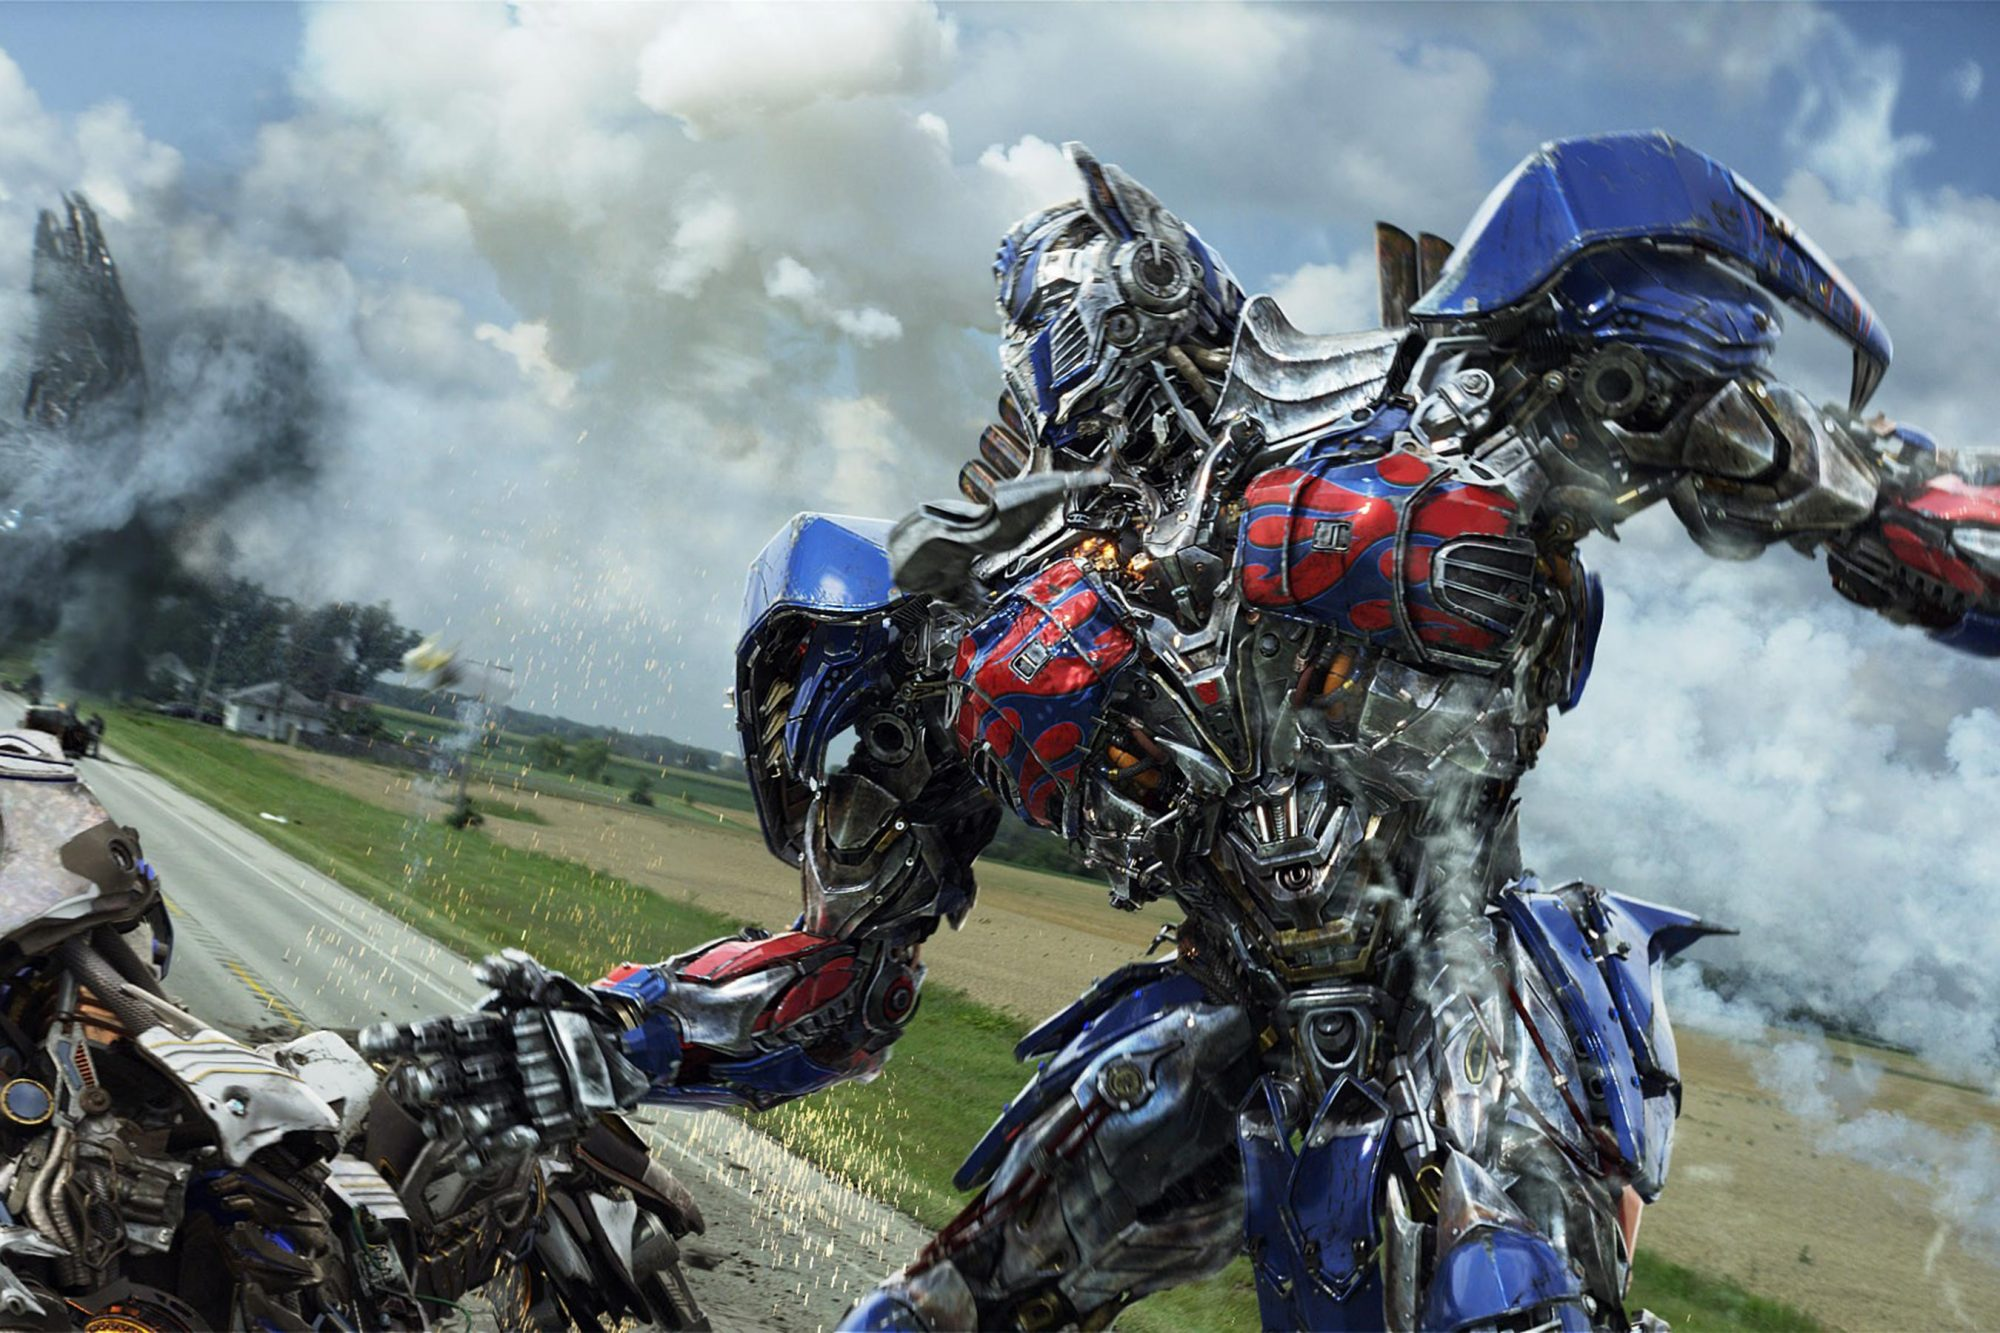 TRANSFORMERS: AGE OF EXTINCTION, Optimus Prime, 2014. ph: Industrial Light & Magic/©Paramount